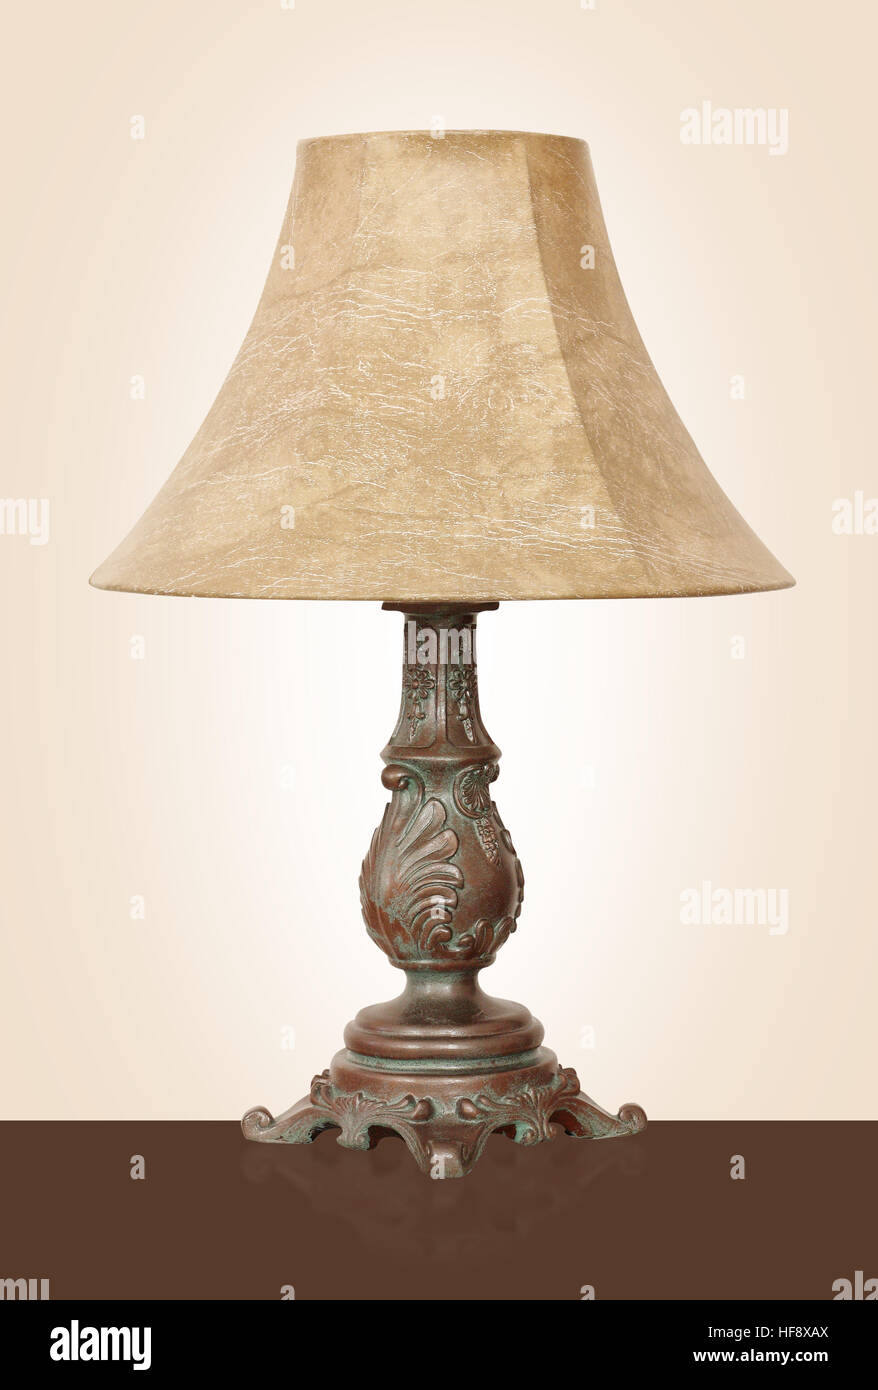 Light fixture - Vintage Desk lamp with the powerful brass basis on a beige background - Stock Image